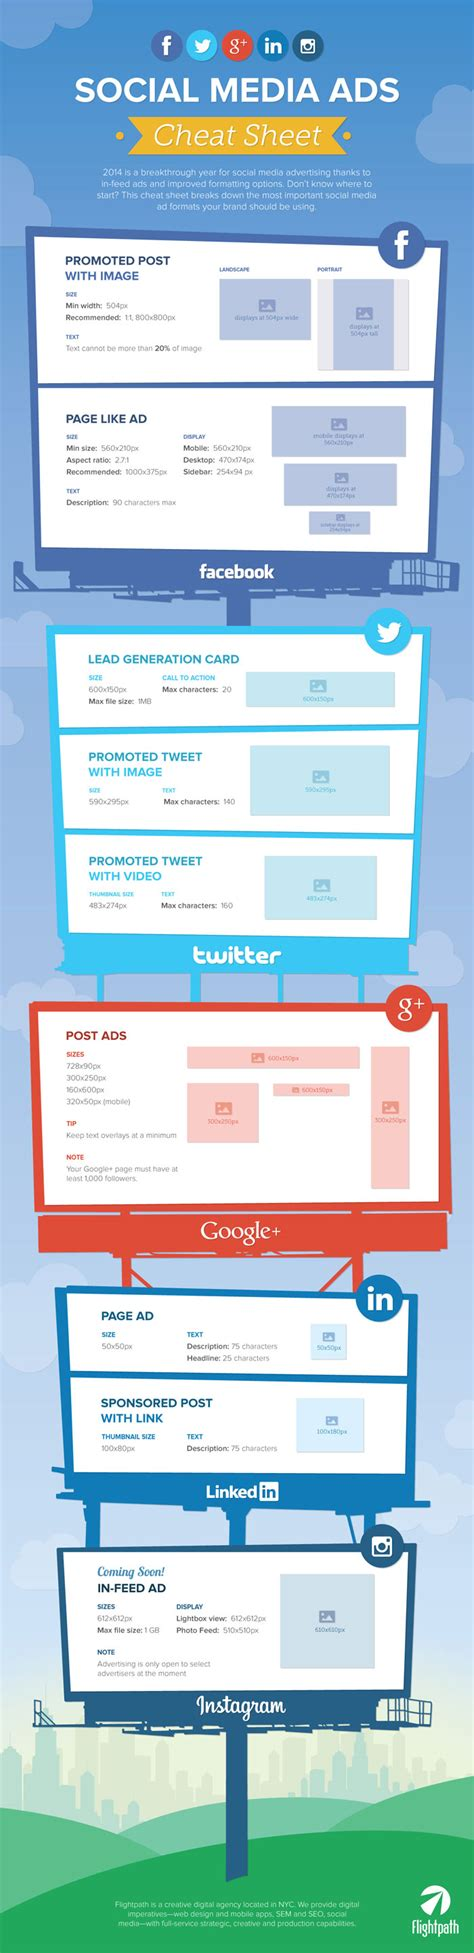 essential social media ad sizes cheat sheet